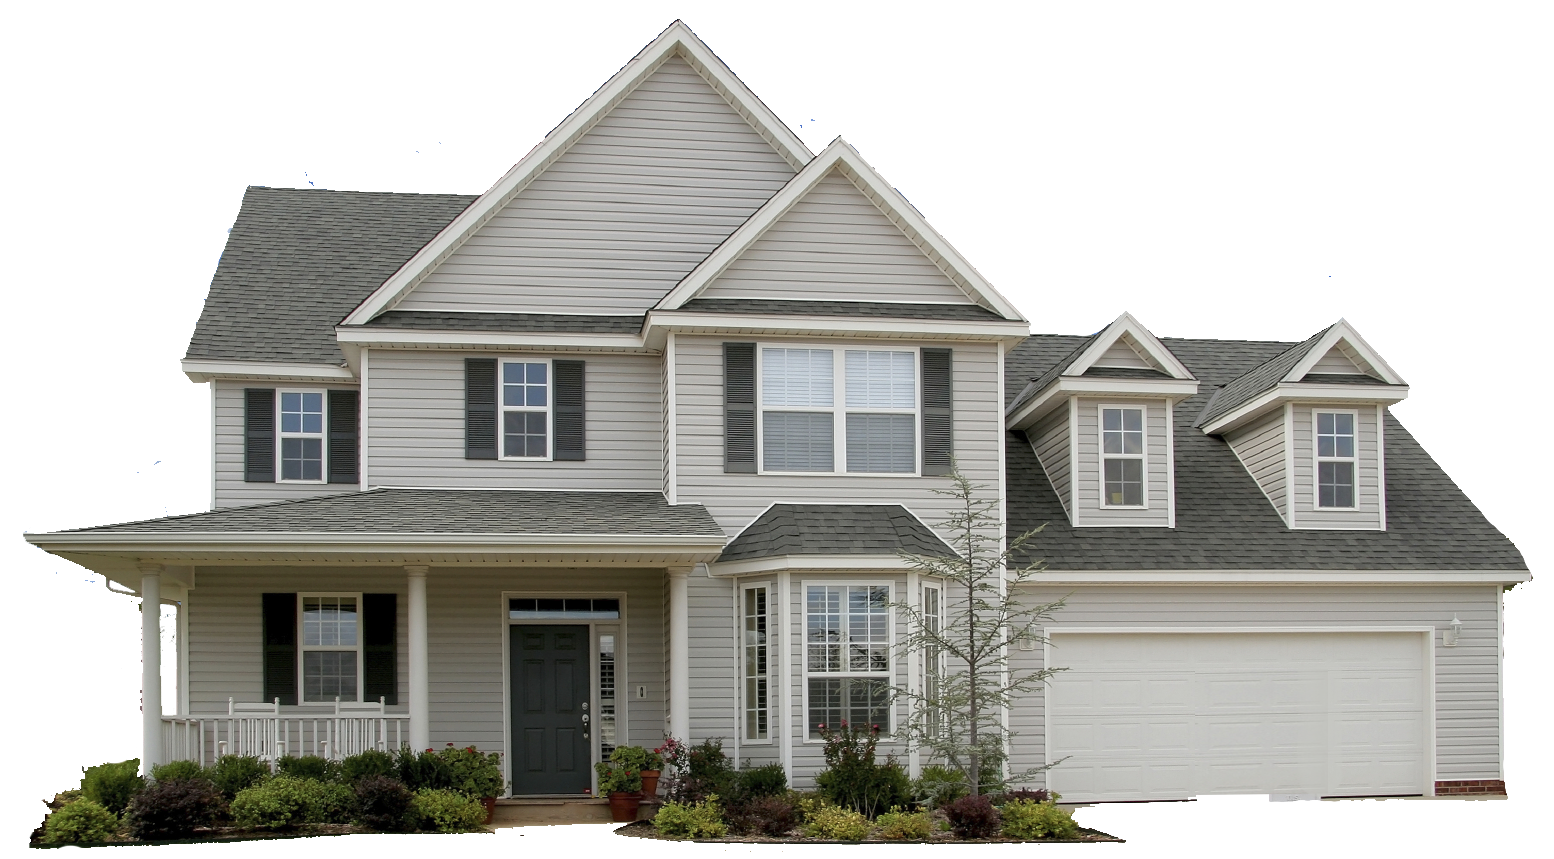 House siding clipart png free stock House PNG Image Without Background | Web Icons PNG png free stock